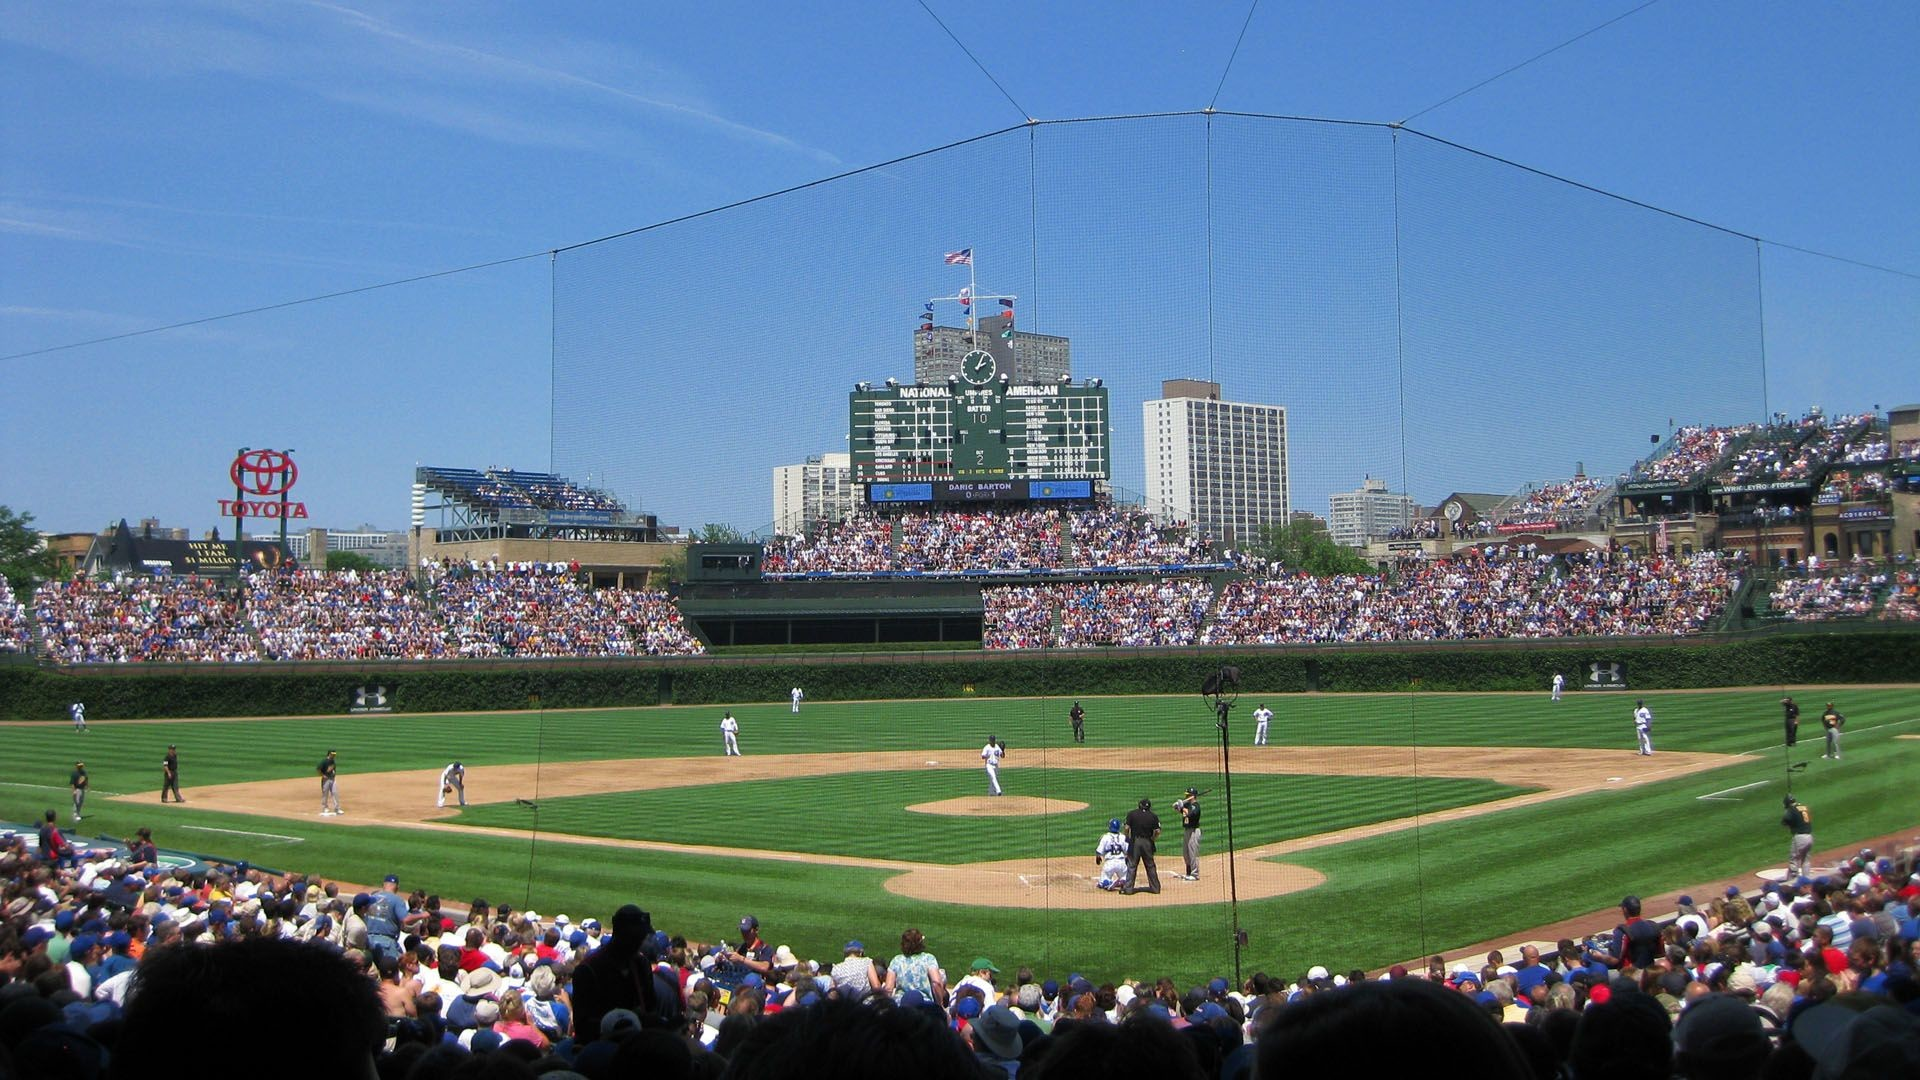 2560x1600 CHICAGO CUBS mlb baseball 58 wallpaper 2560x1600 232586 2560x1600